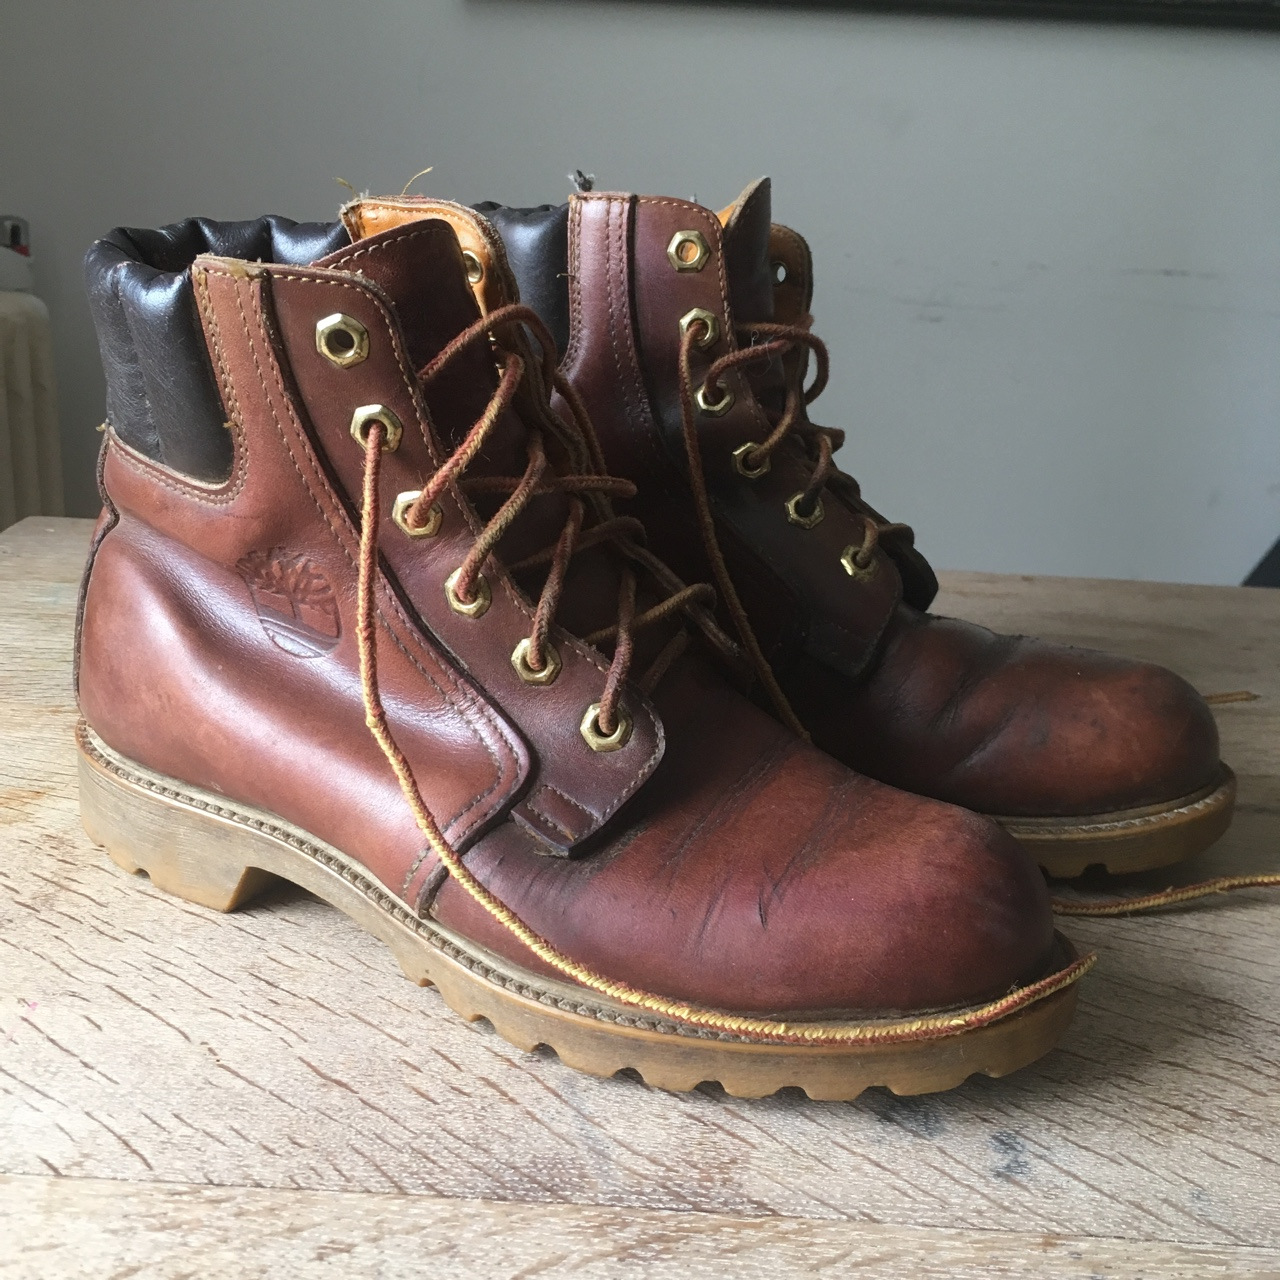 09b9505f0607e Vintage Timberland Boots. These are a real rare... - Depop